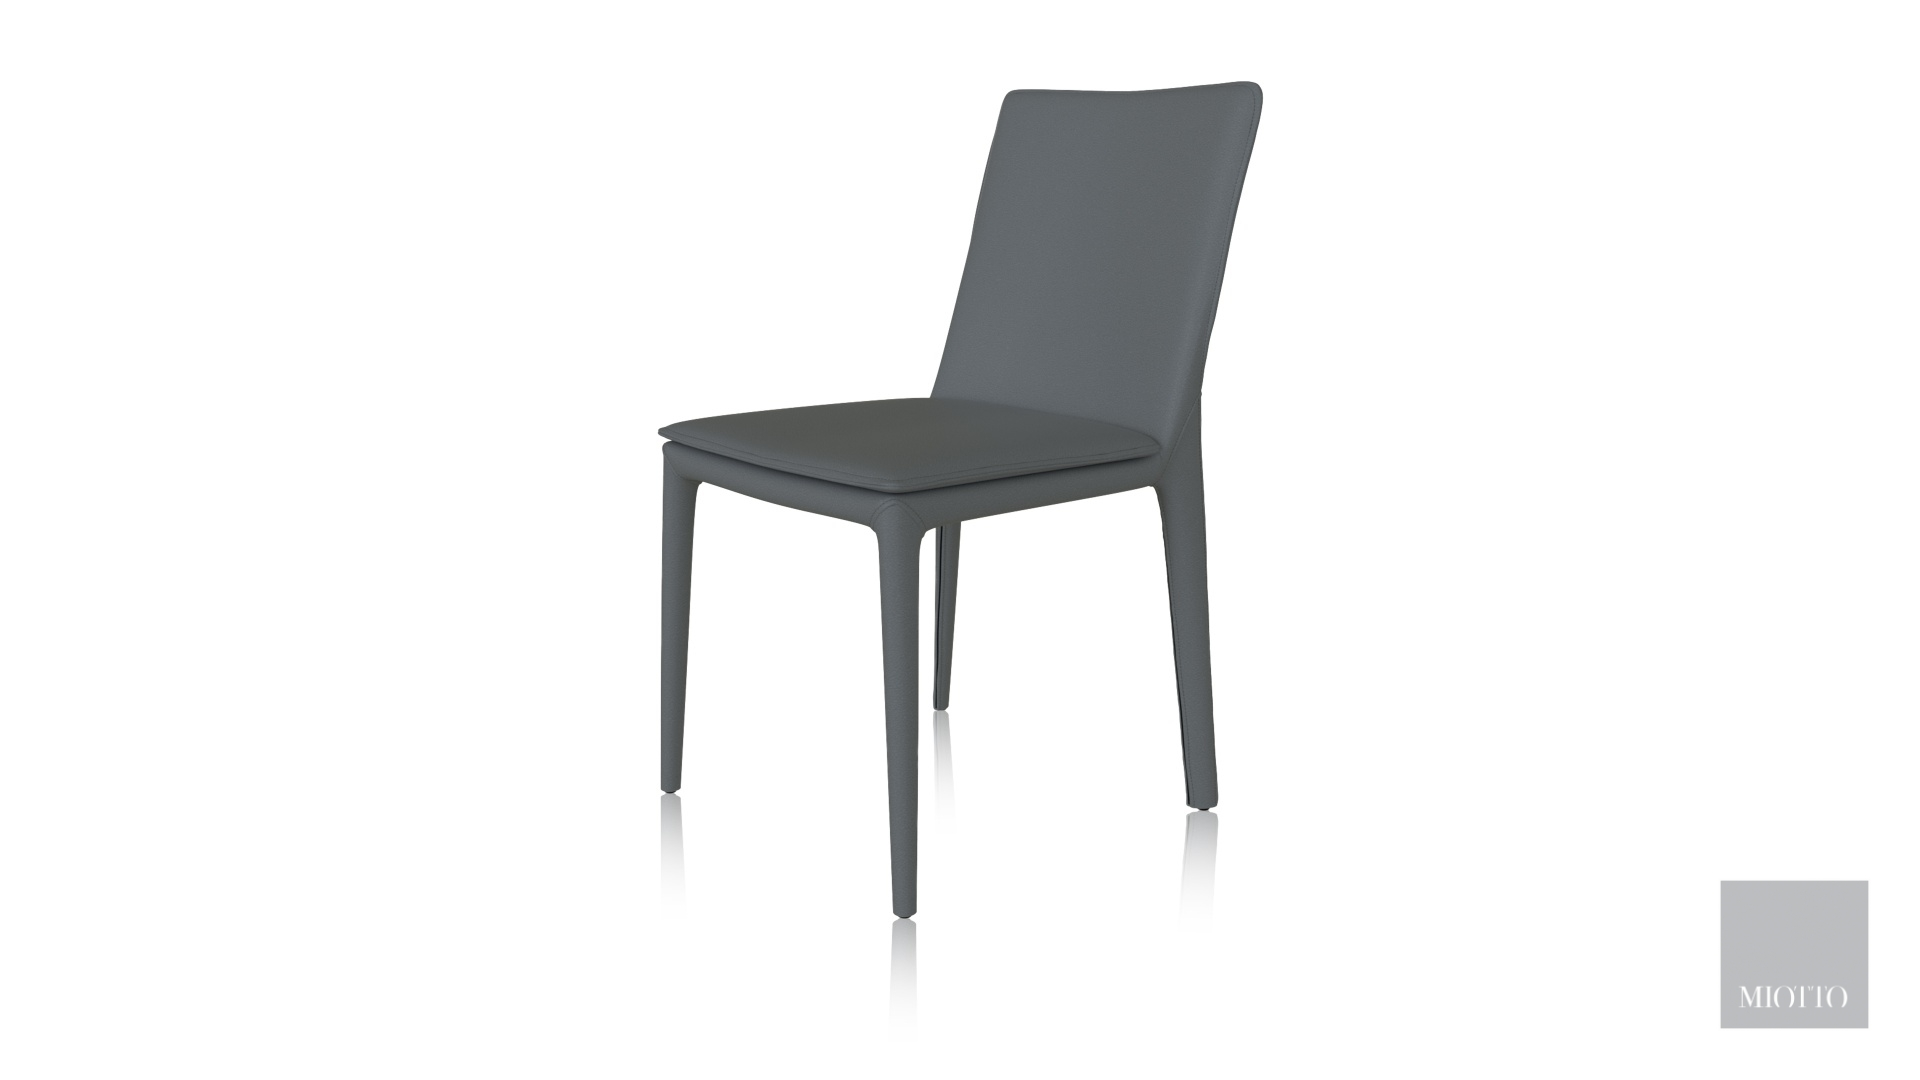 miotto_torano DC dark grey T miotto dining chair furniture